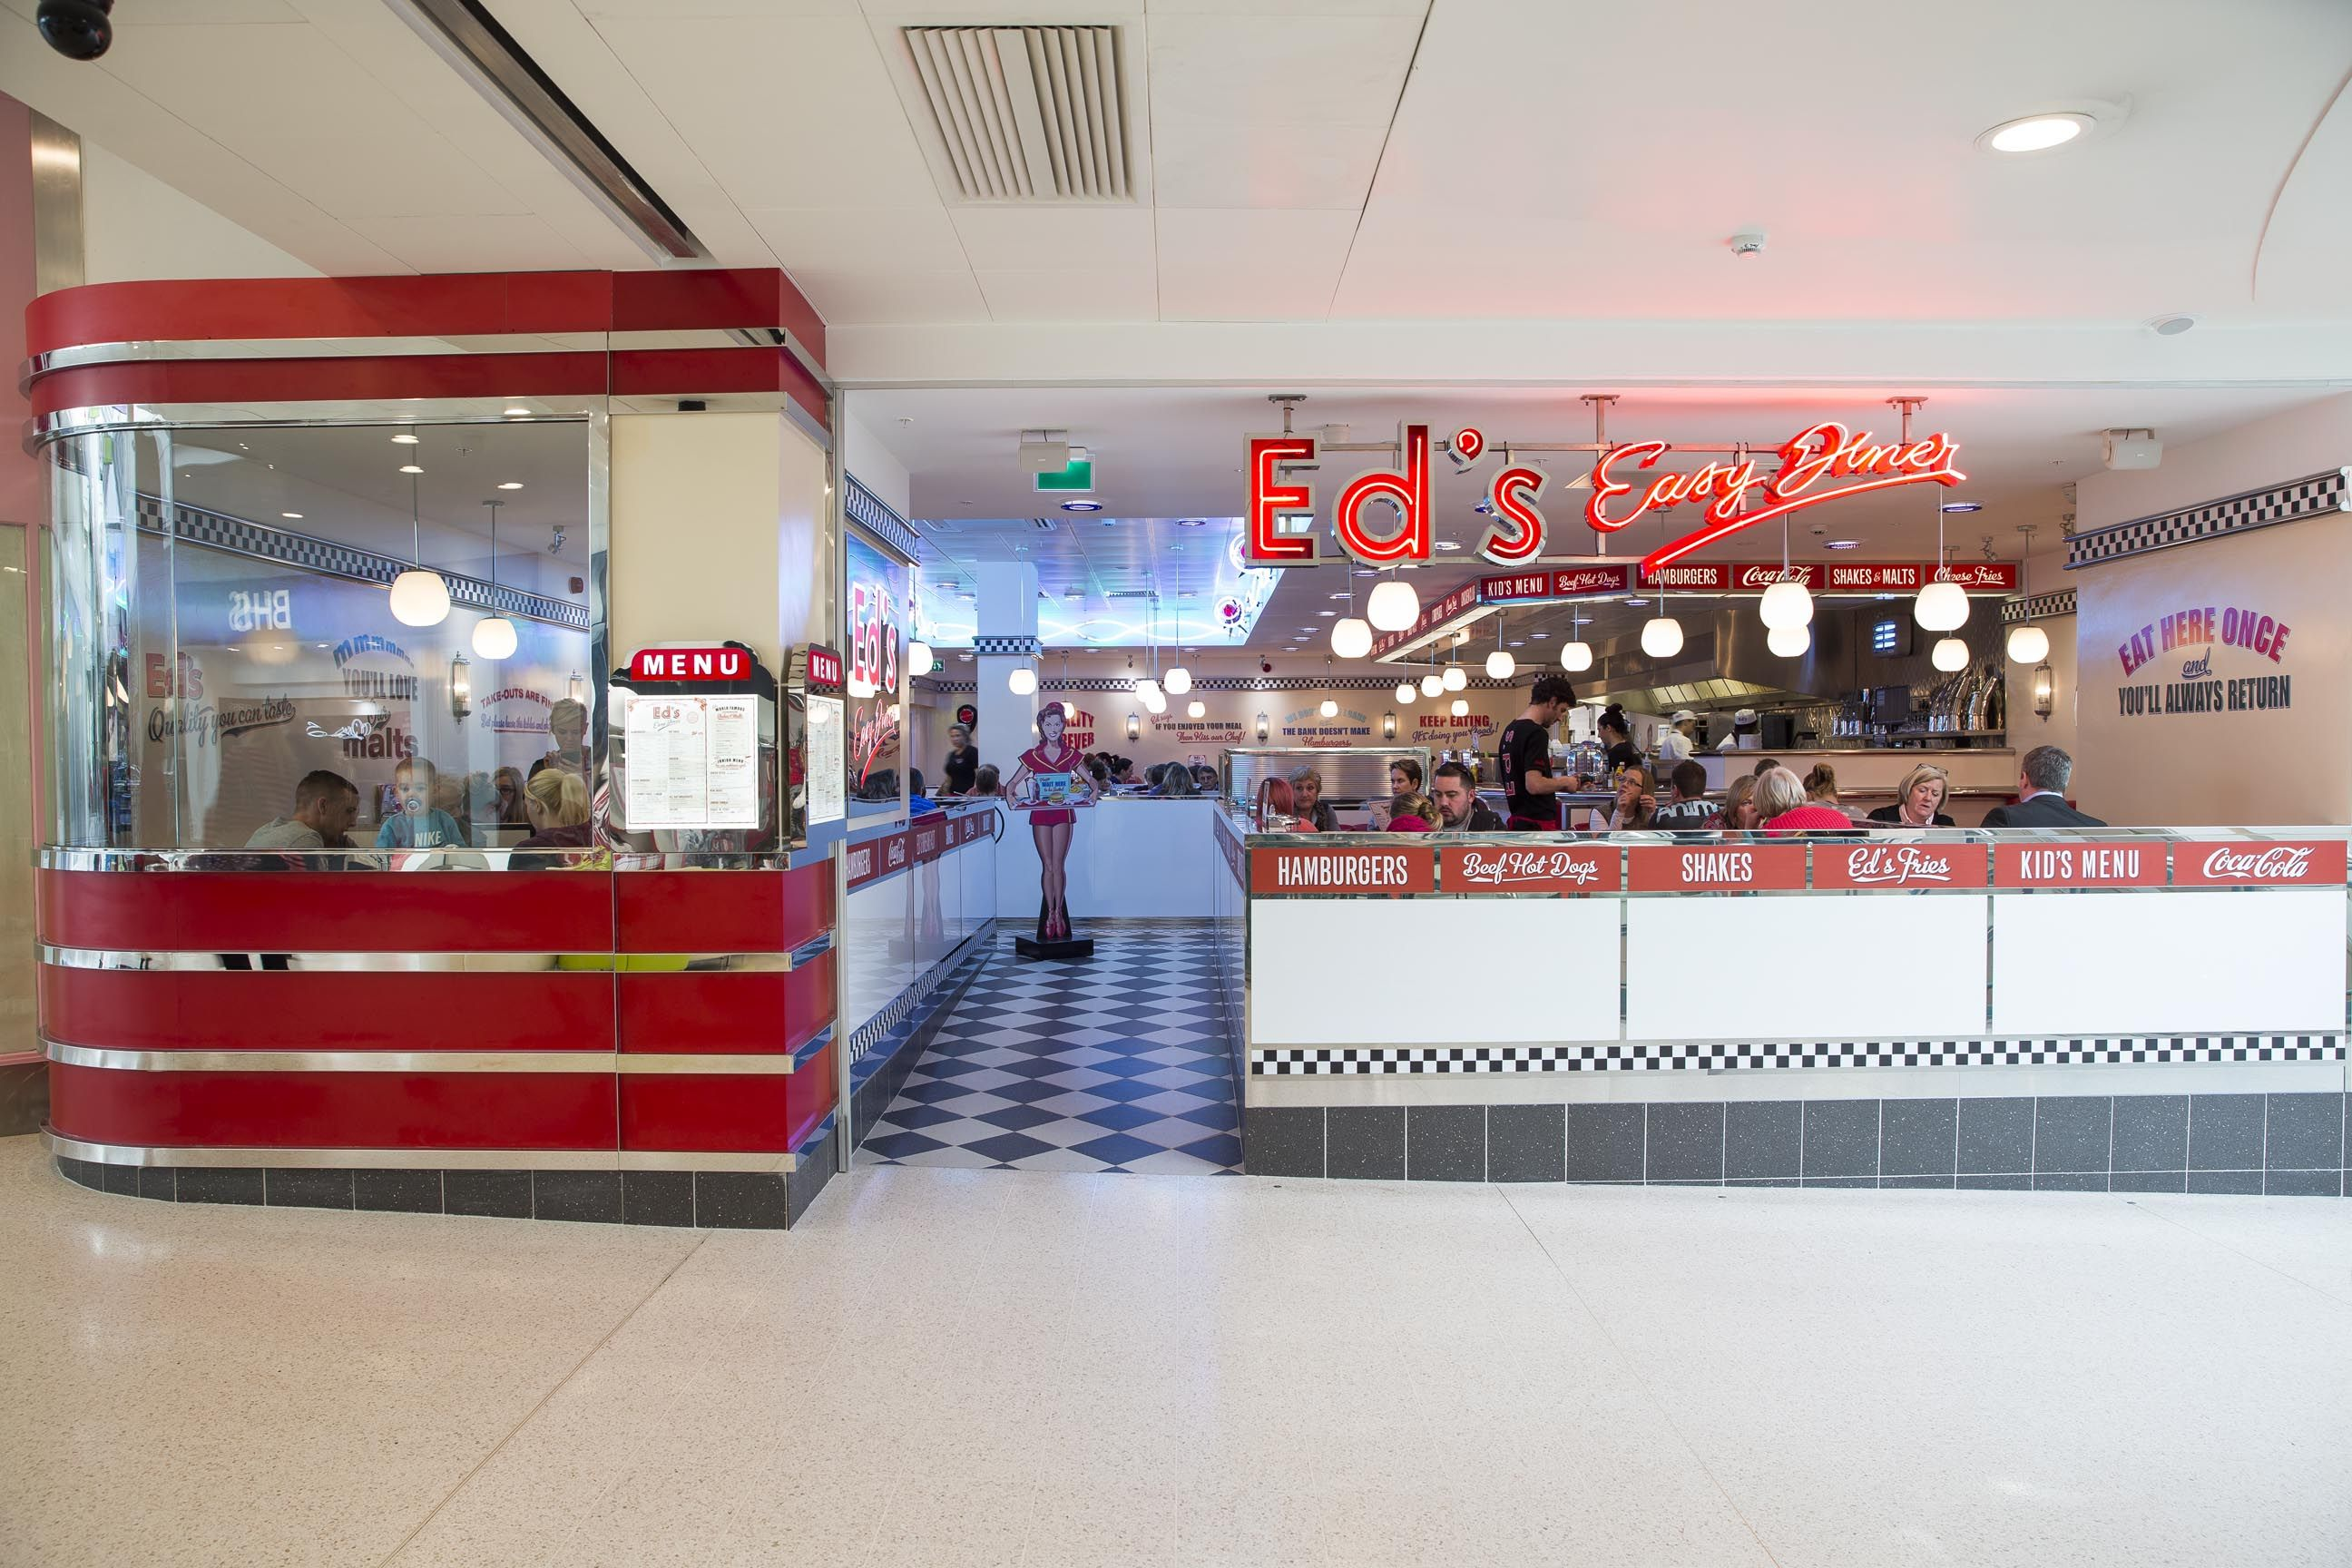 Ed S Easy Diner Watford As The Harlequin Centre This Shopping Mall Has Enjoyed Great Success Over The Years Now Under Easy Diner Ed S Easy Diner Kids Menu